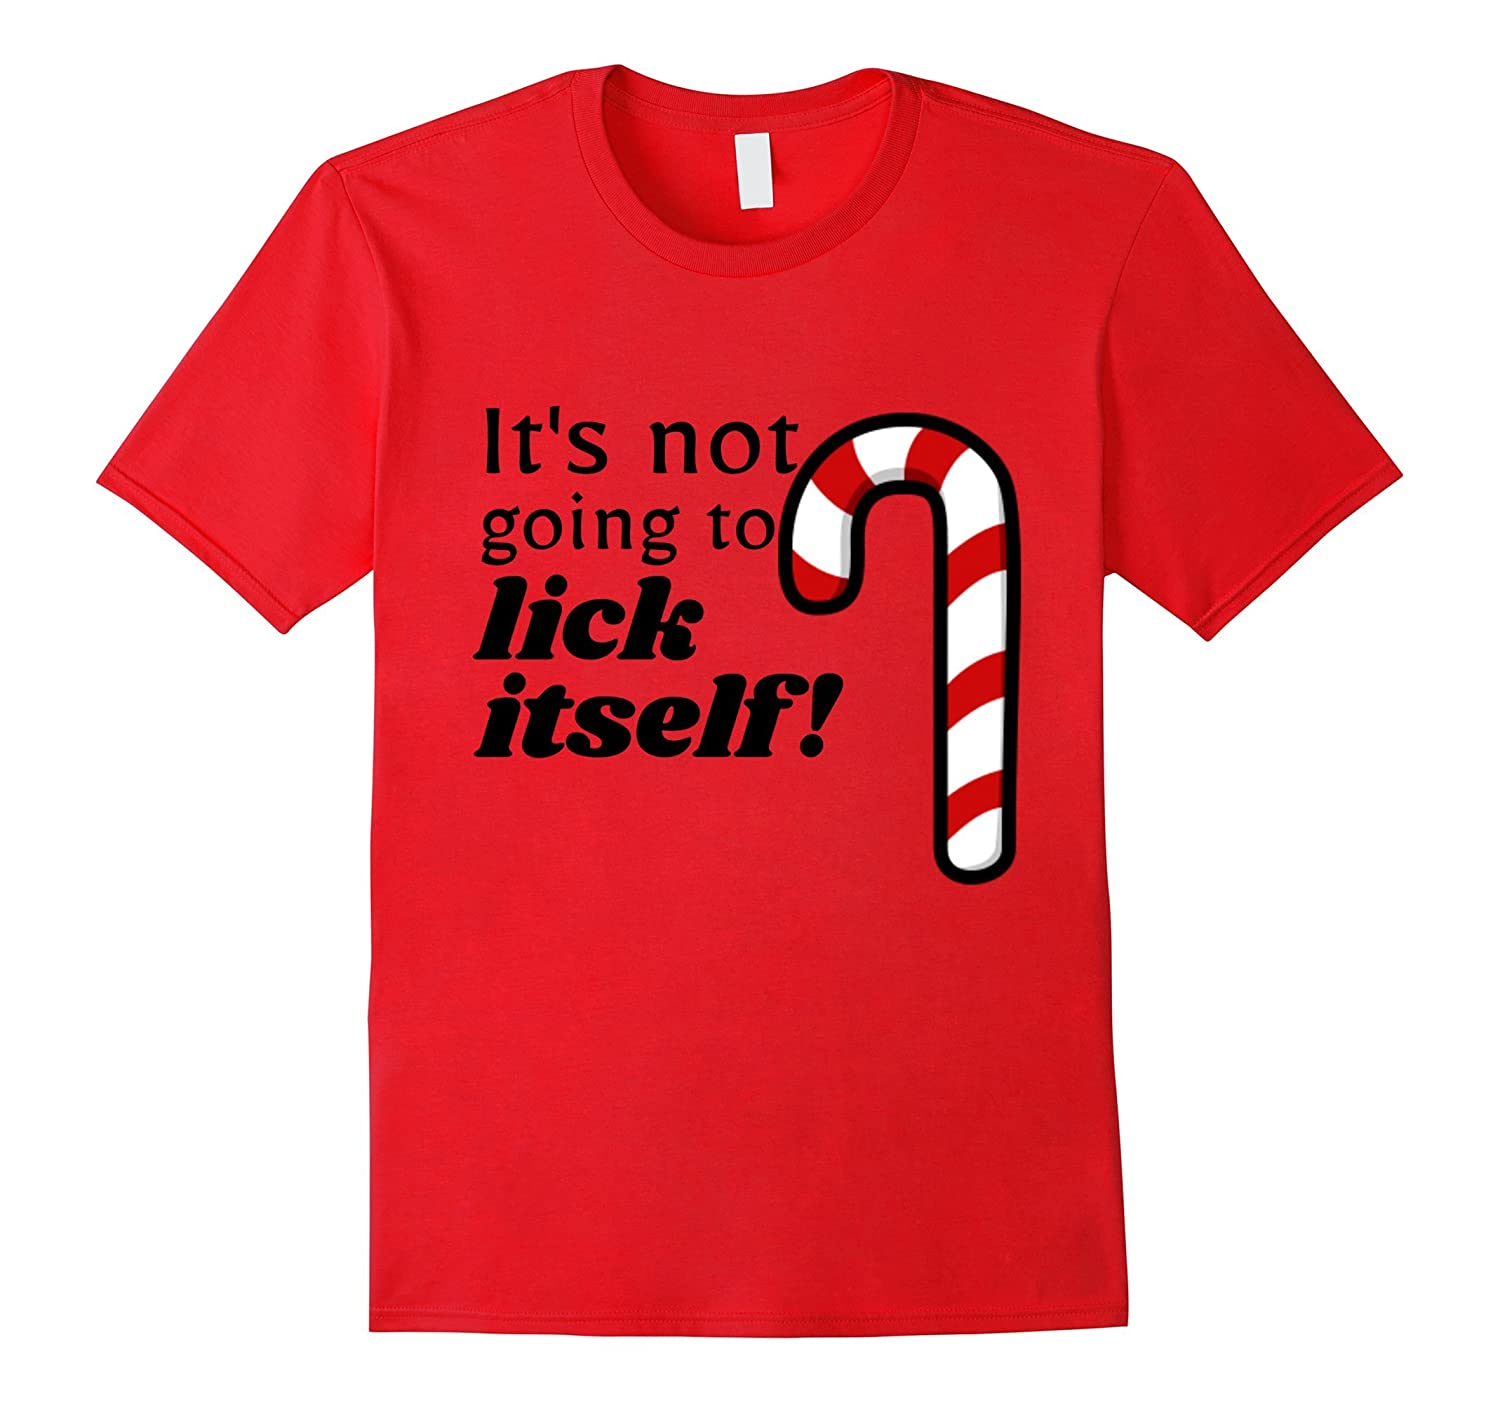 Christmas Adult Funny Candy Cane Lick T-Shirt Humor-Rose